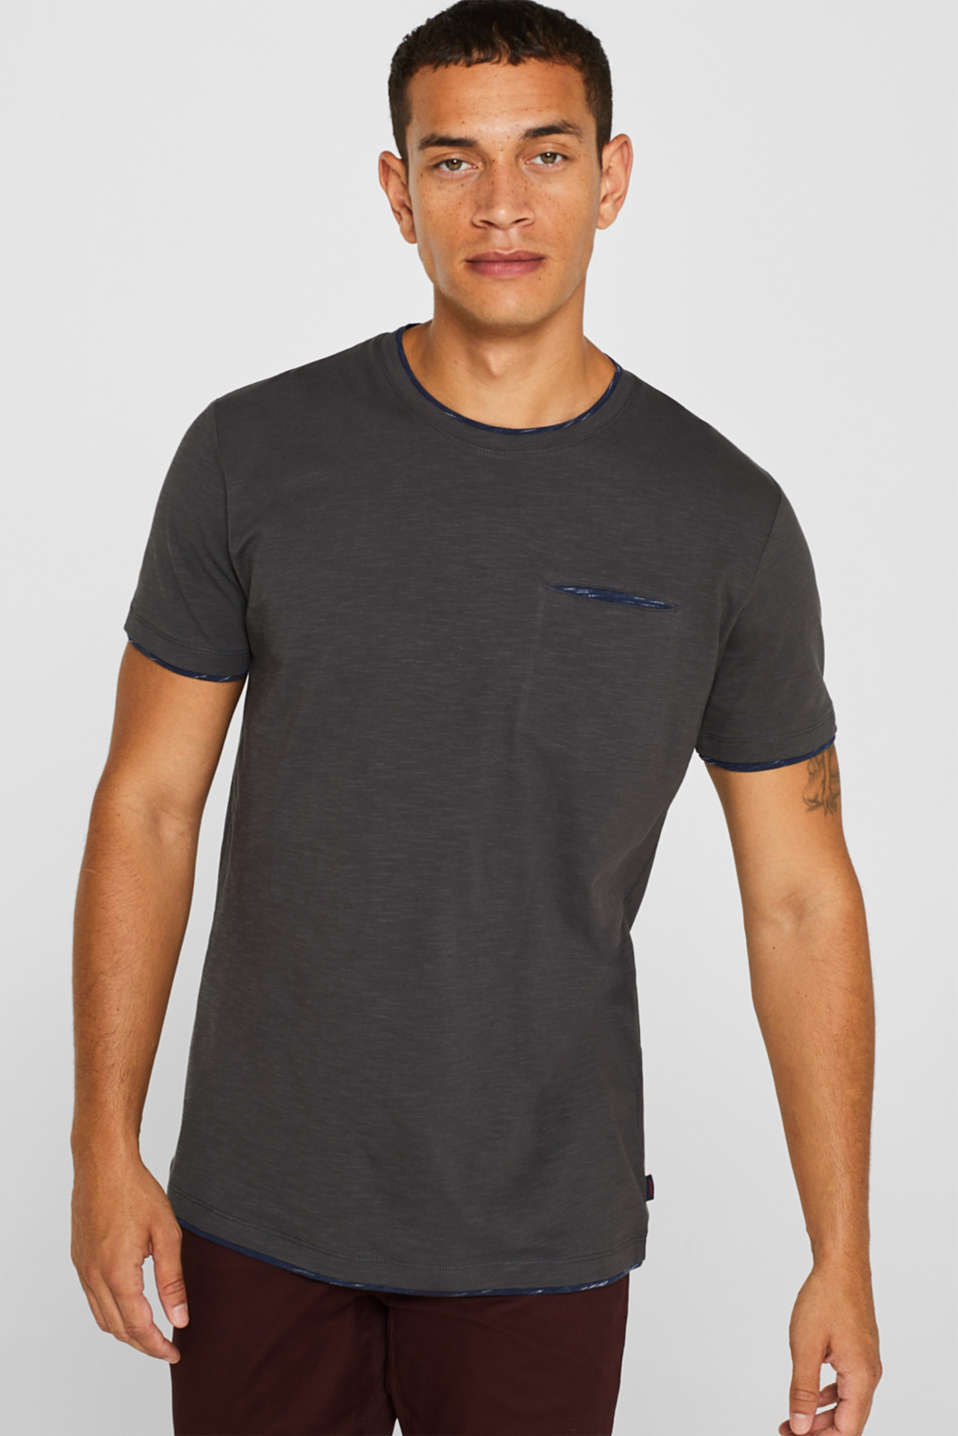 Esprit - Jersey T-shirt in a layered look, 100% cotton